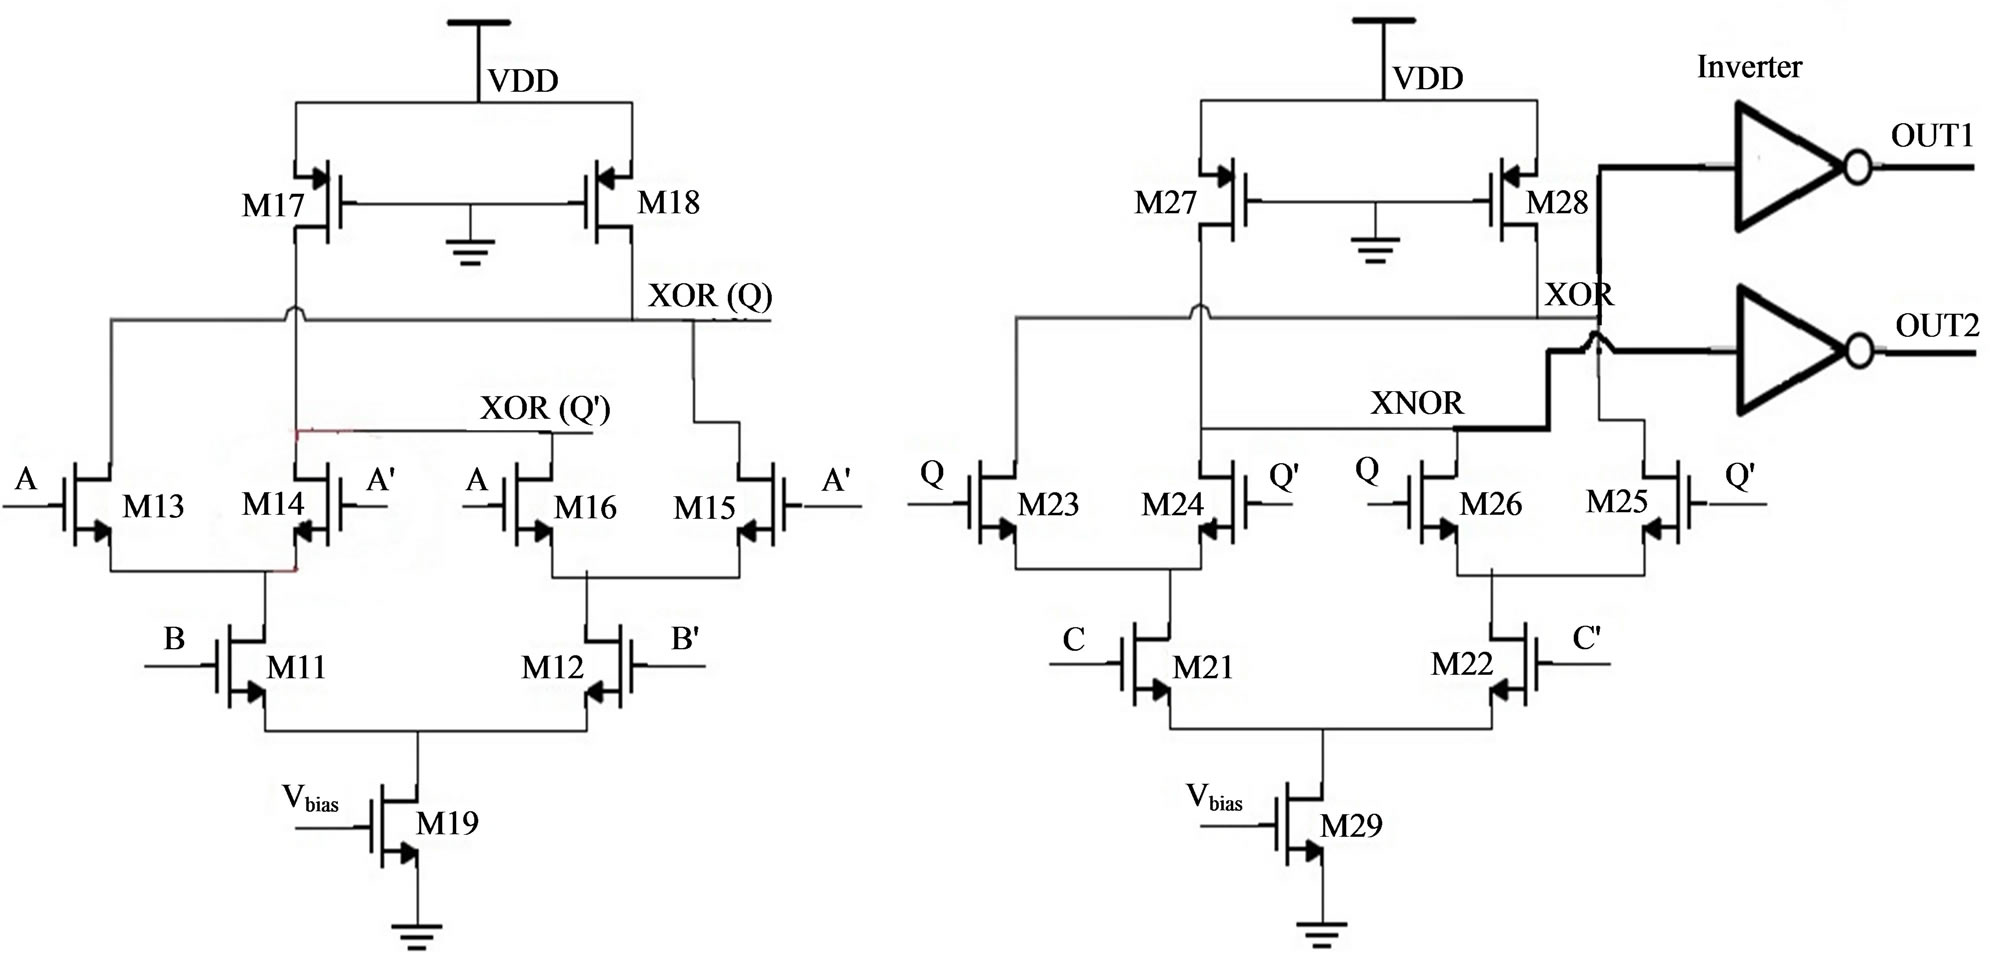 Current Mode Logic Testing Of Xor Xnor Circuit A Case Study Use Transistor In